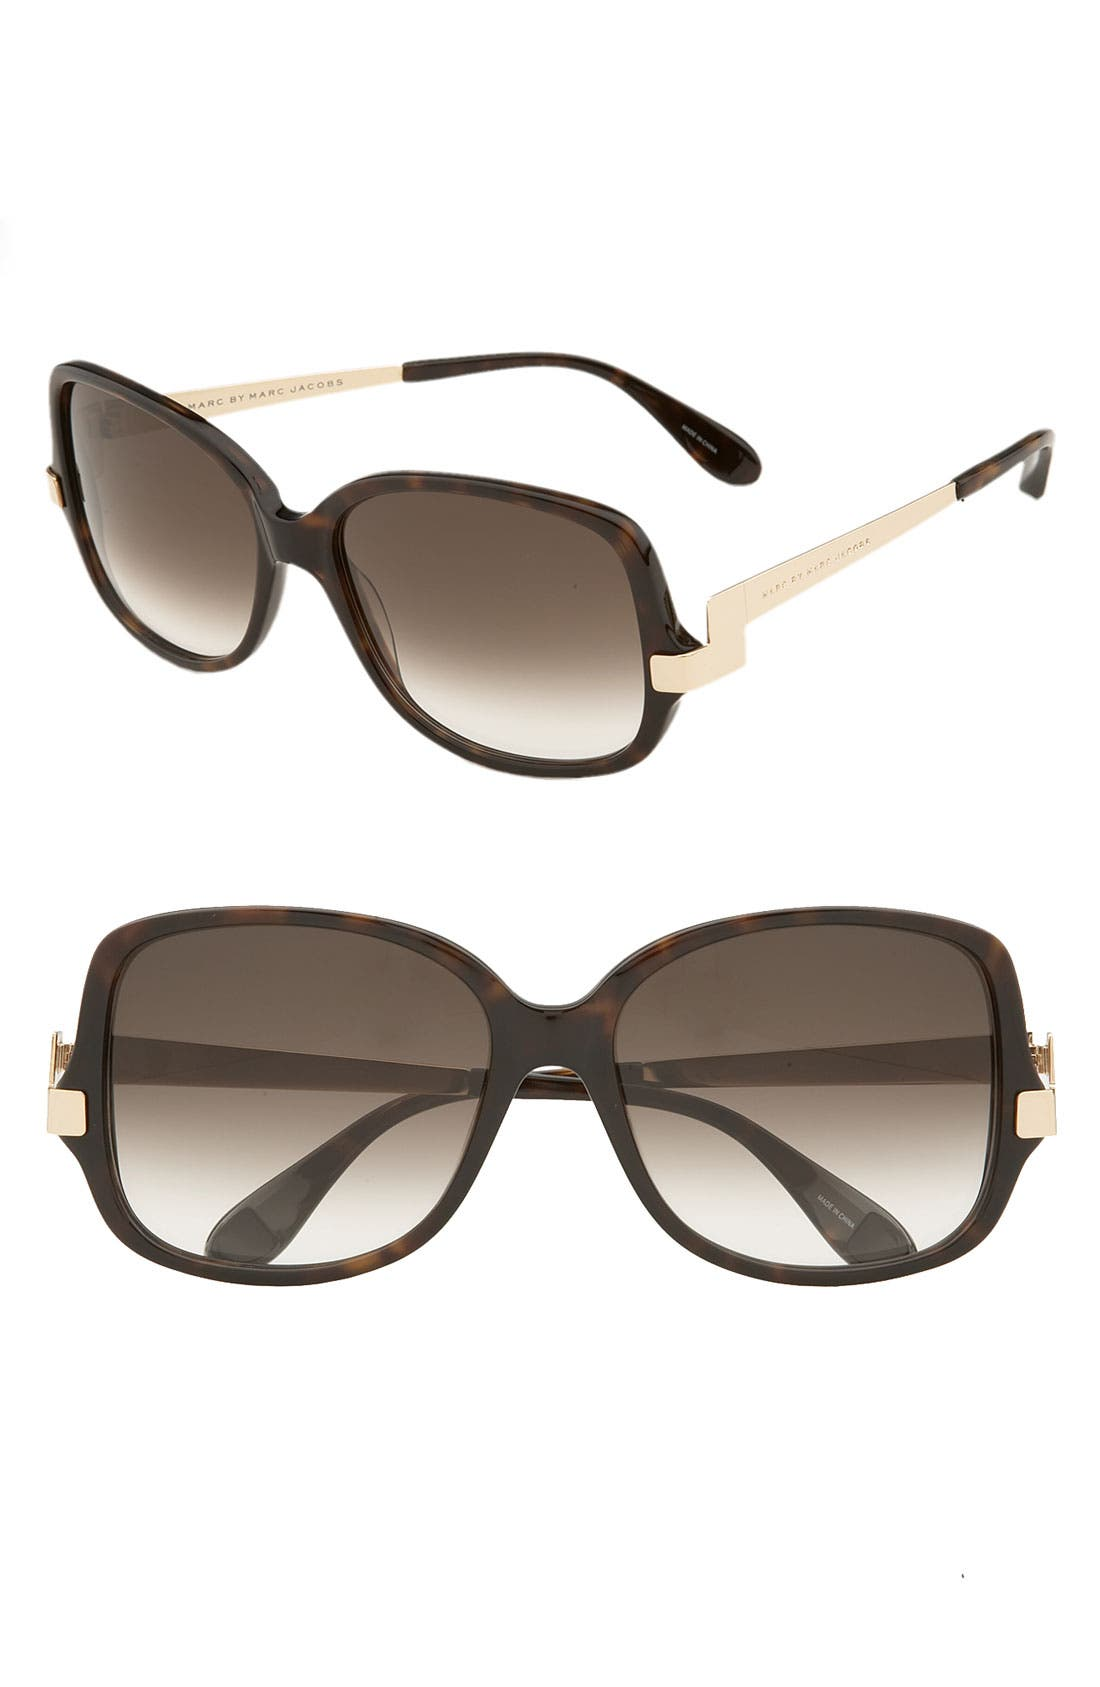 Main Image - MARC BY MARC JACOBS 56mm Oversized Square Sunglasses with Retro Temples